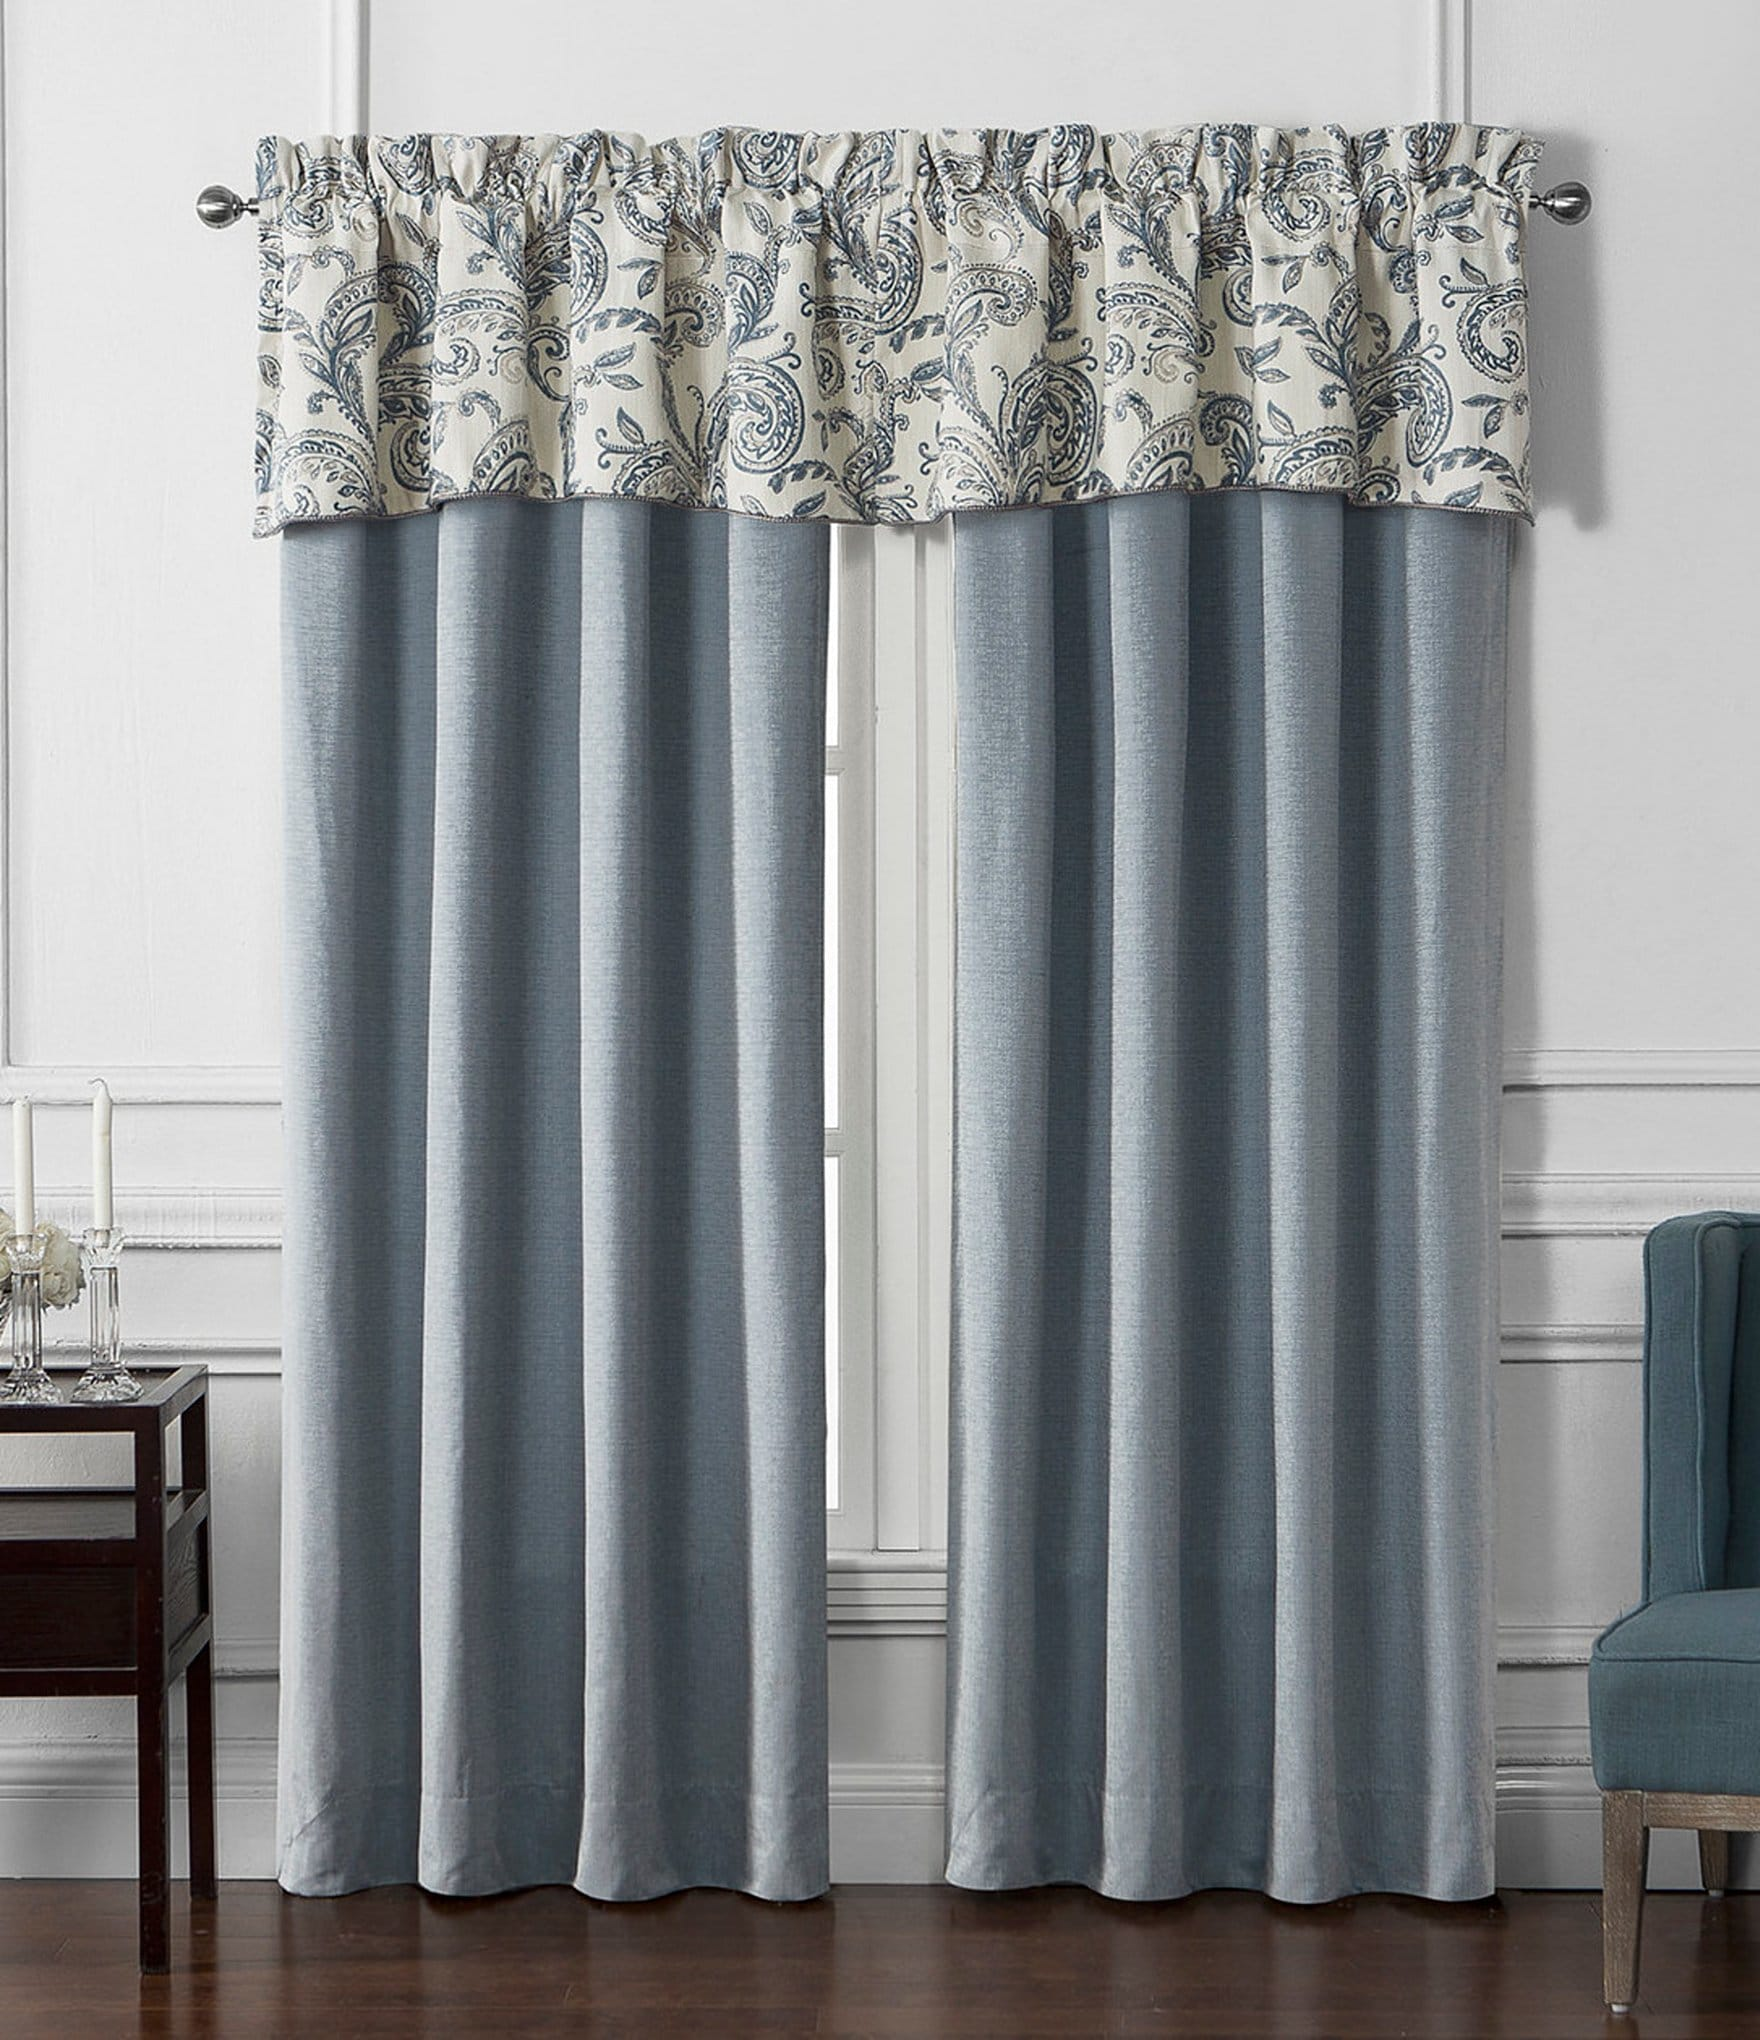 Waterford Florence Window Treatments